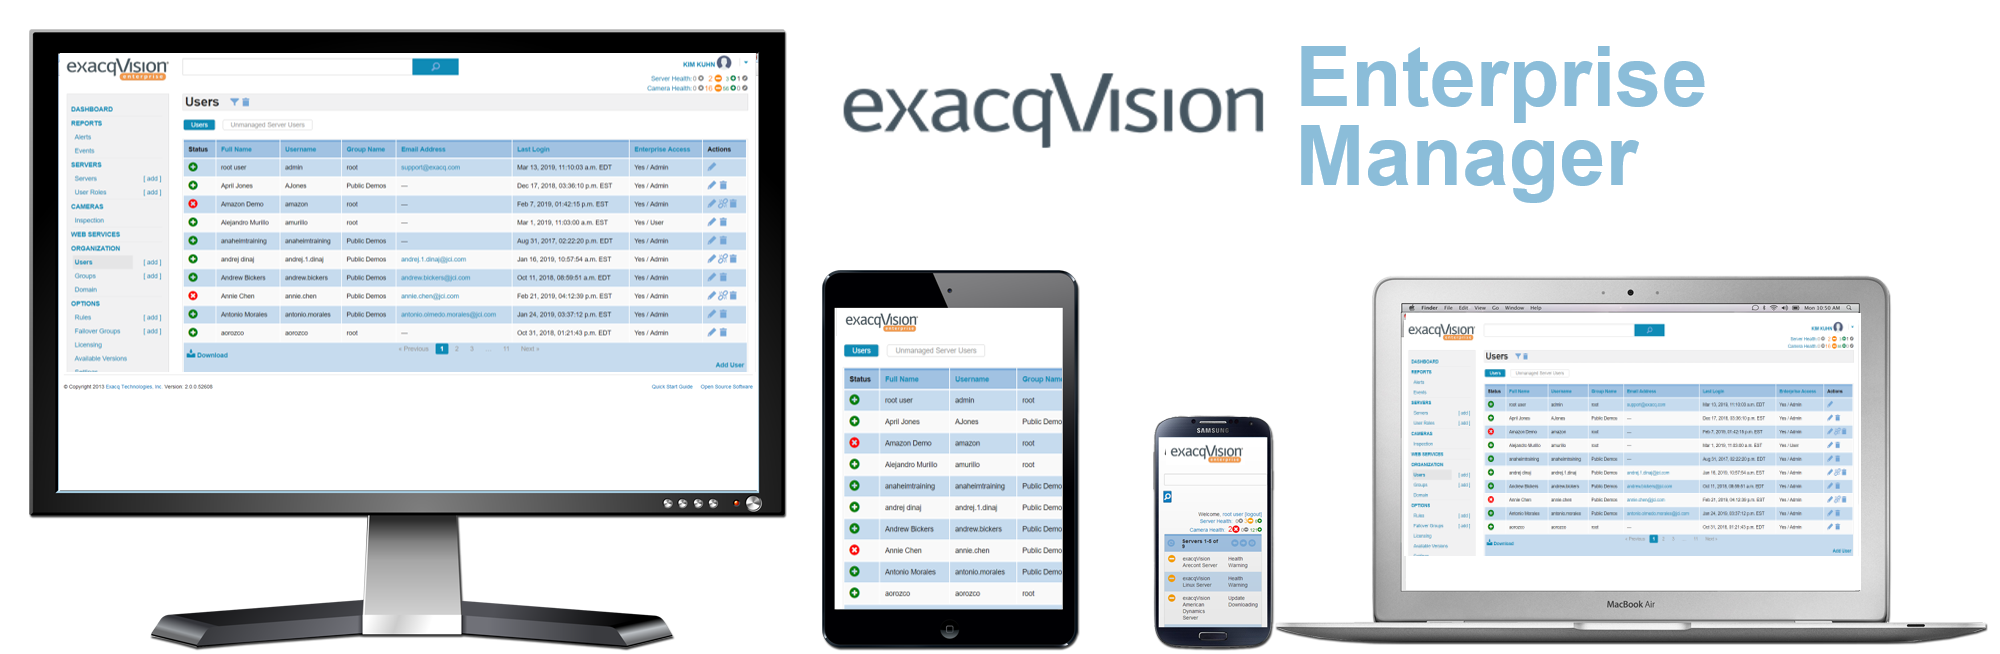 exacqVision Enterprise Video Management System Software